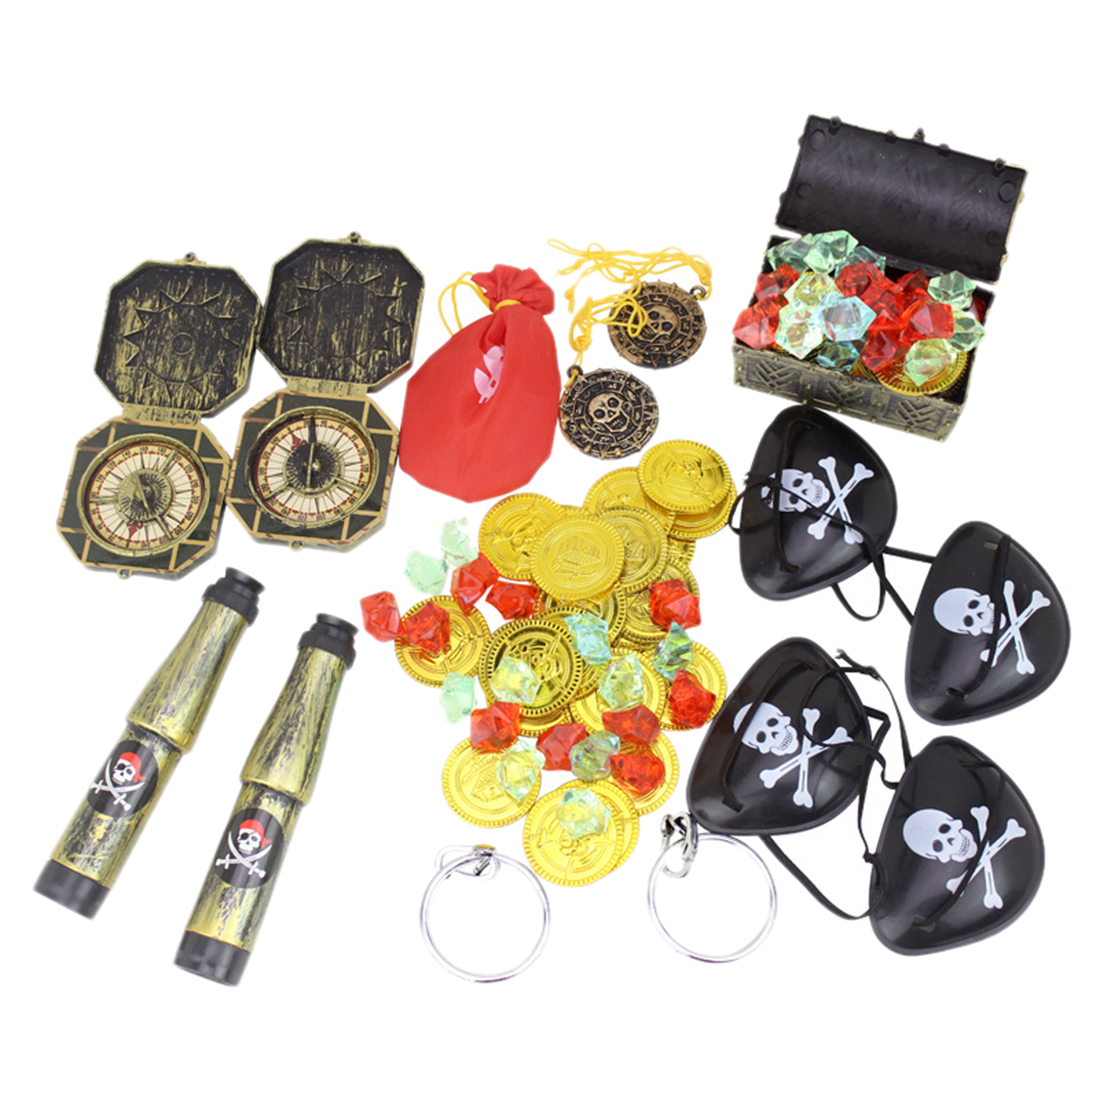 60Pcs Pirates Costume Props Set Pirate Eye Patch Eyeshade Cover Gold Coins Pirate Gems Jewelry Treasure Box Kid's Party Supply